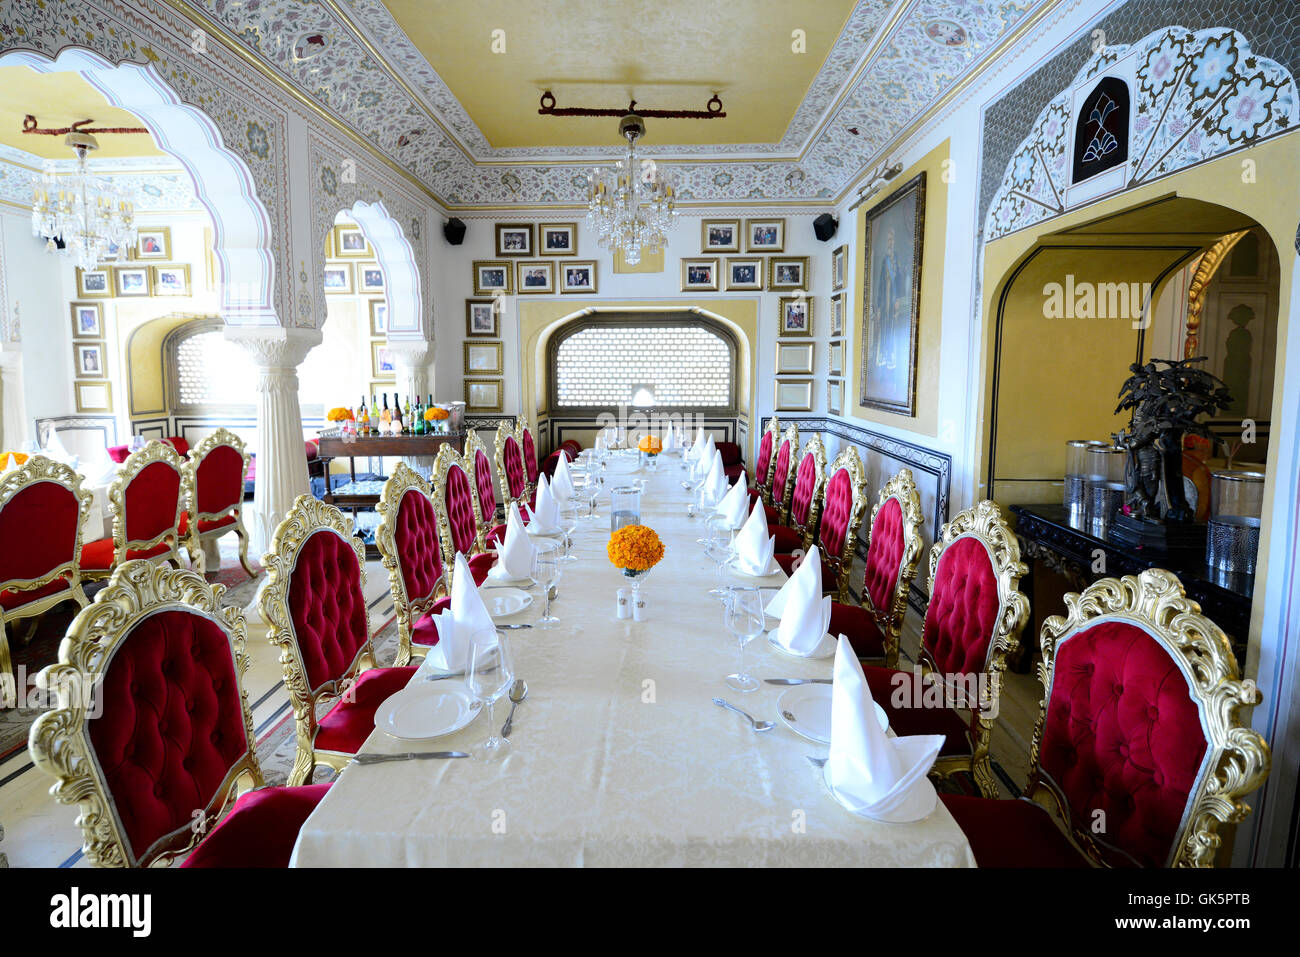 1135 AD restaurant inside Amber fort, Jaipur, Rajasthan, India interior. - Stock Image